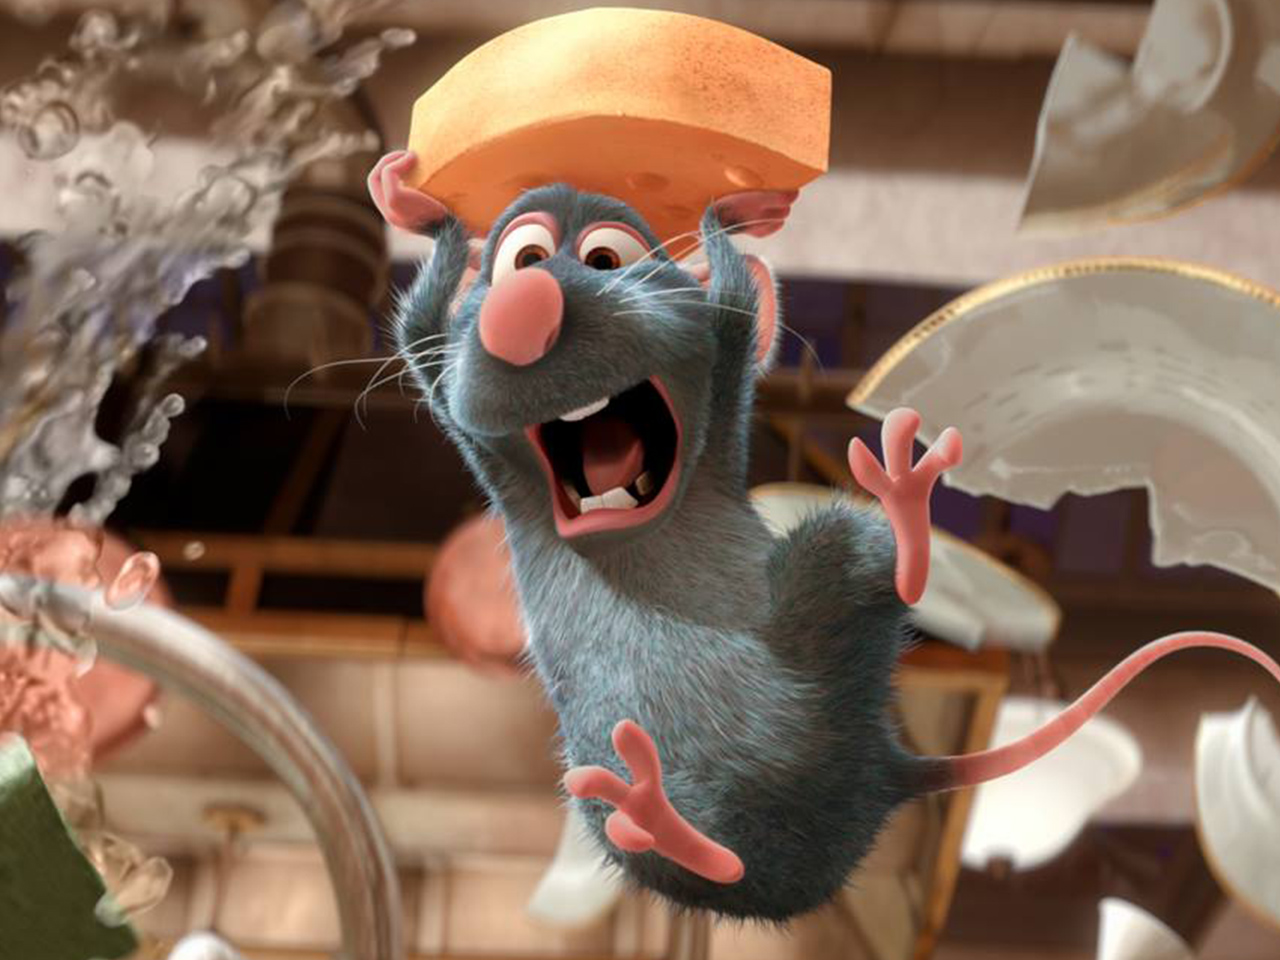 A still from the kids' animated movie Ratatouille